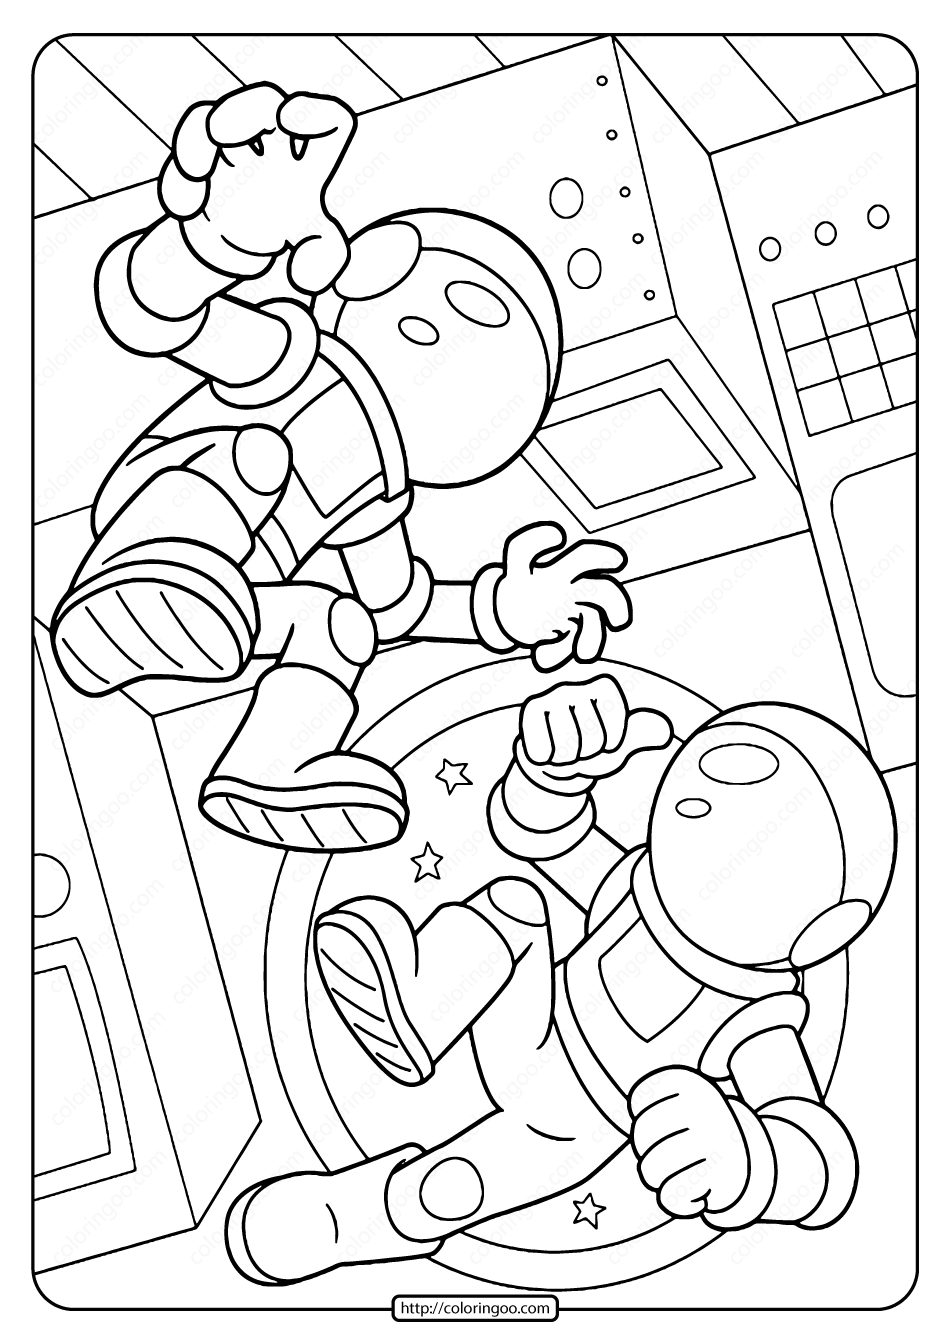 space printable coloring pages 20 free space coloring pages printable coloring printable space pages